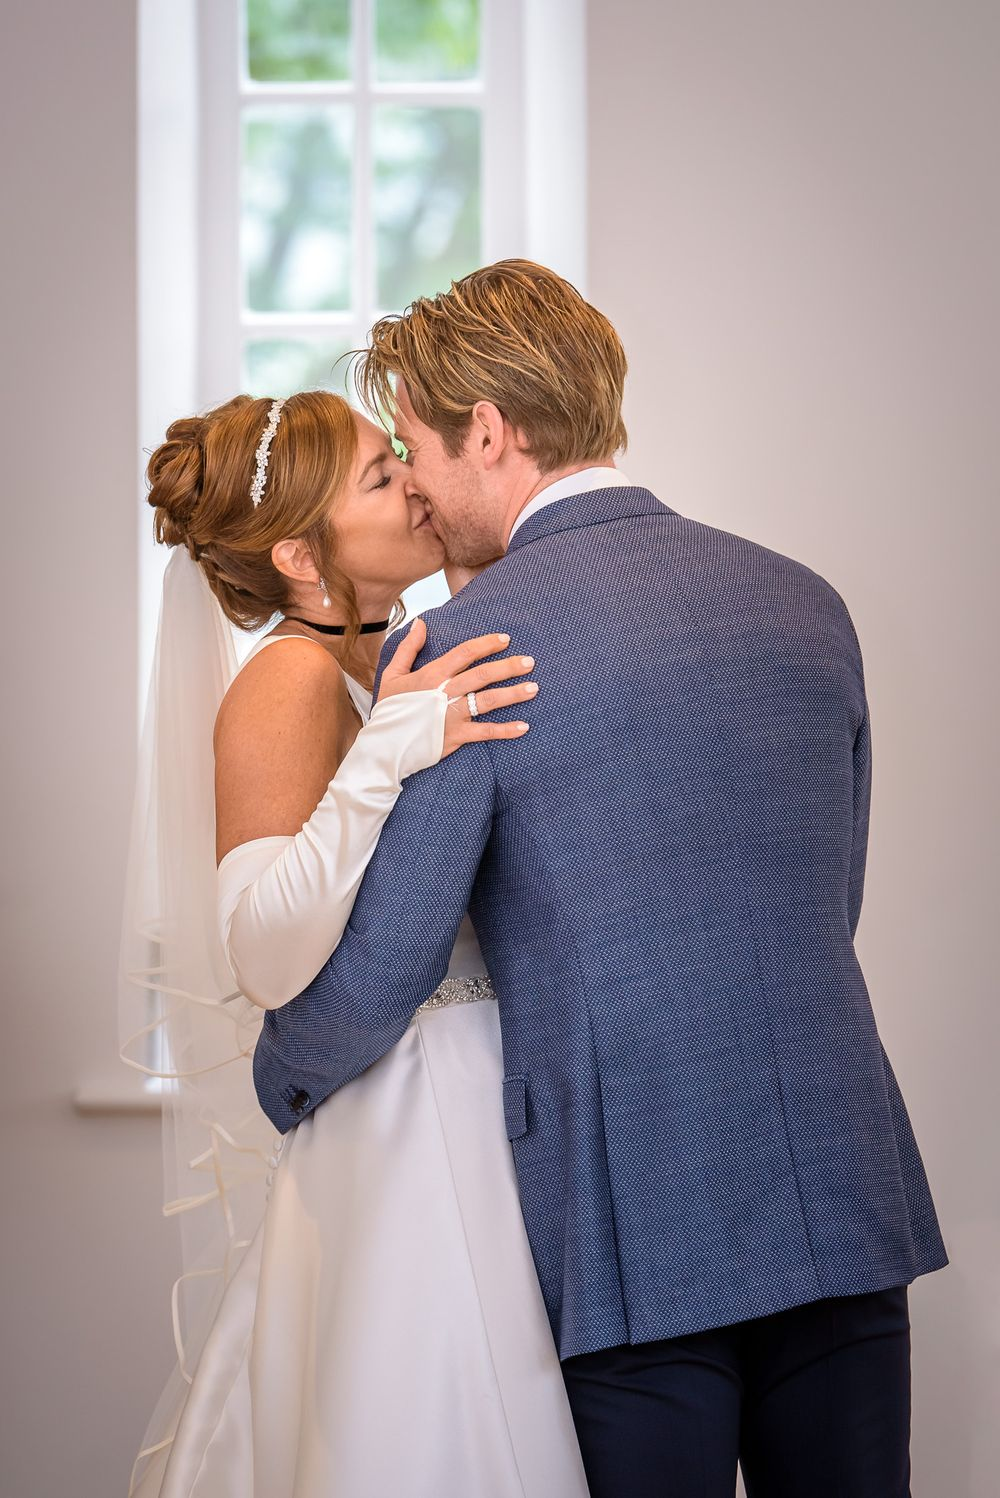 First kiss for bride and groom at Silverholme Manor wedding